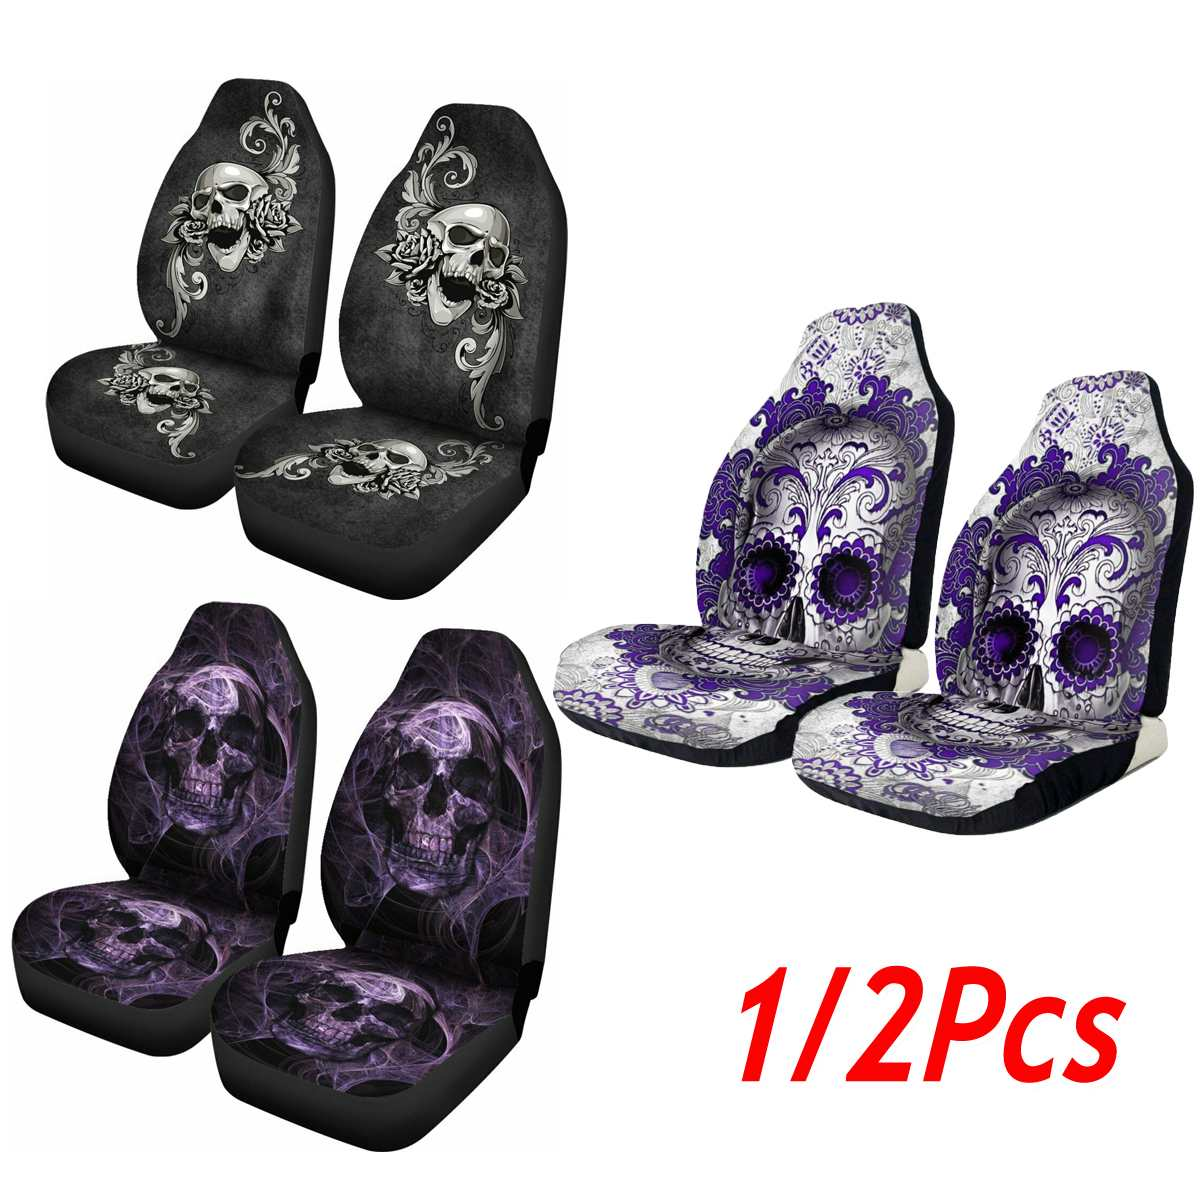 Seat-Protector Cushion Car-Accessories Skull-Printing Universal Car-Front Full-Cover title=